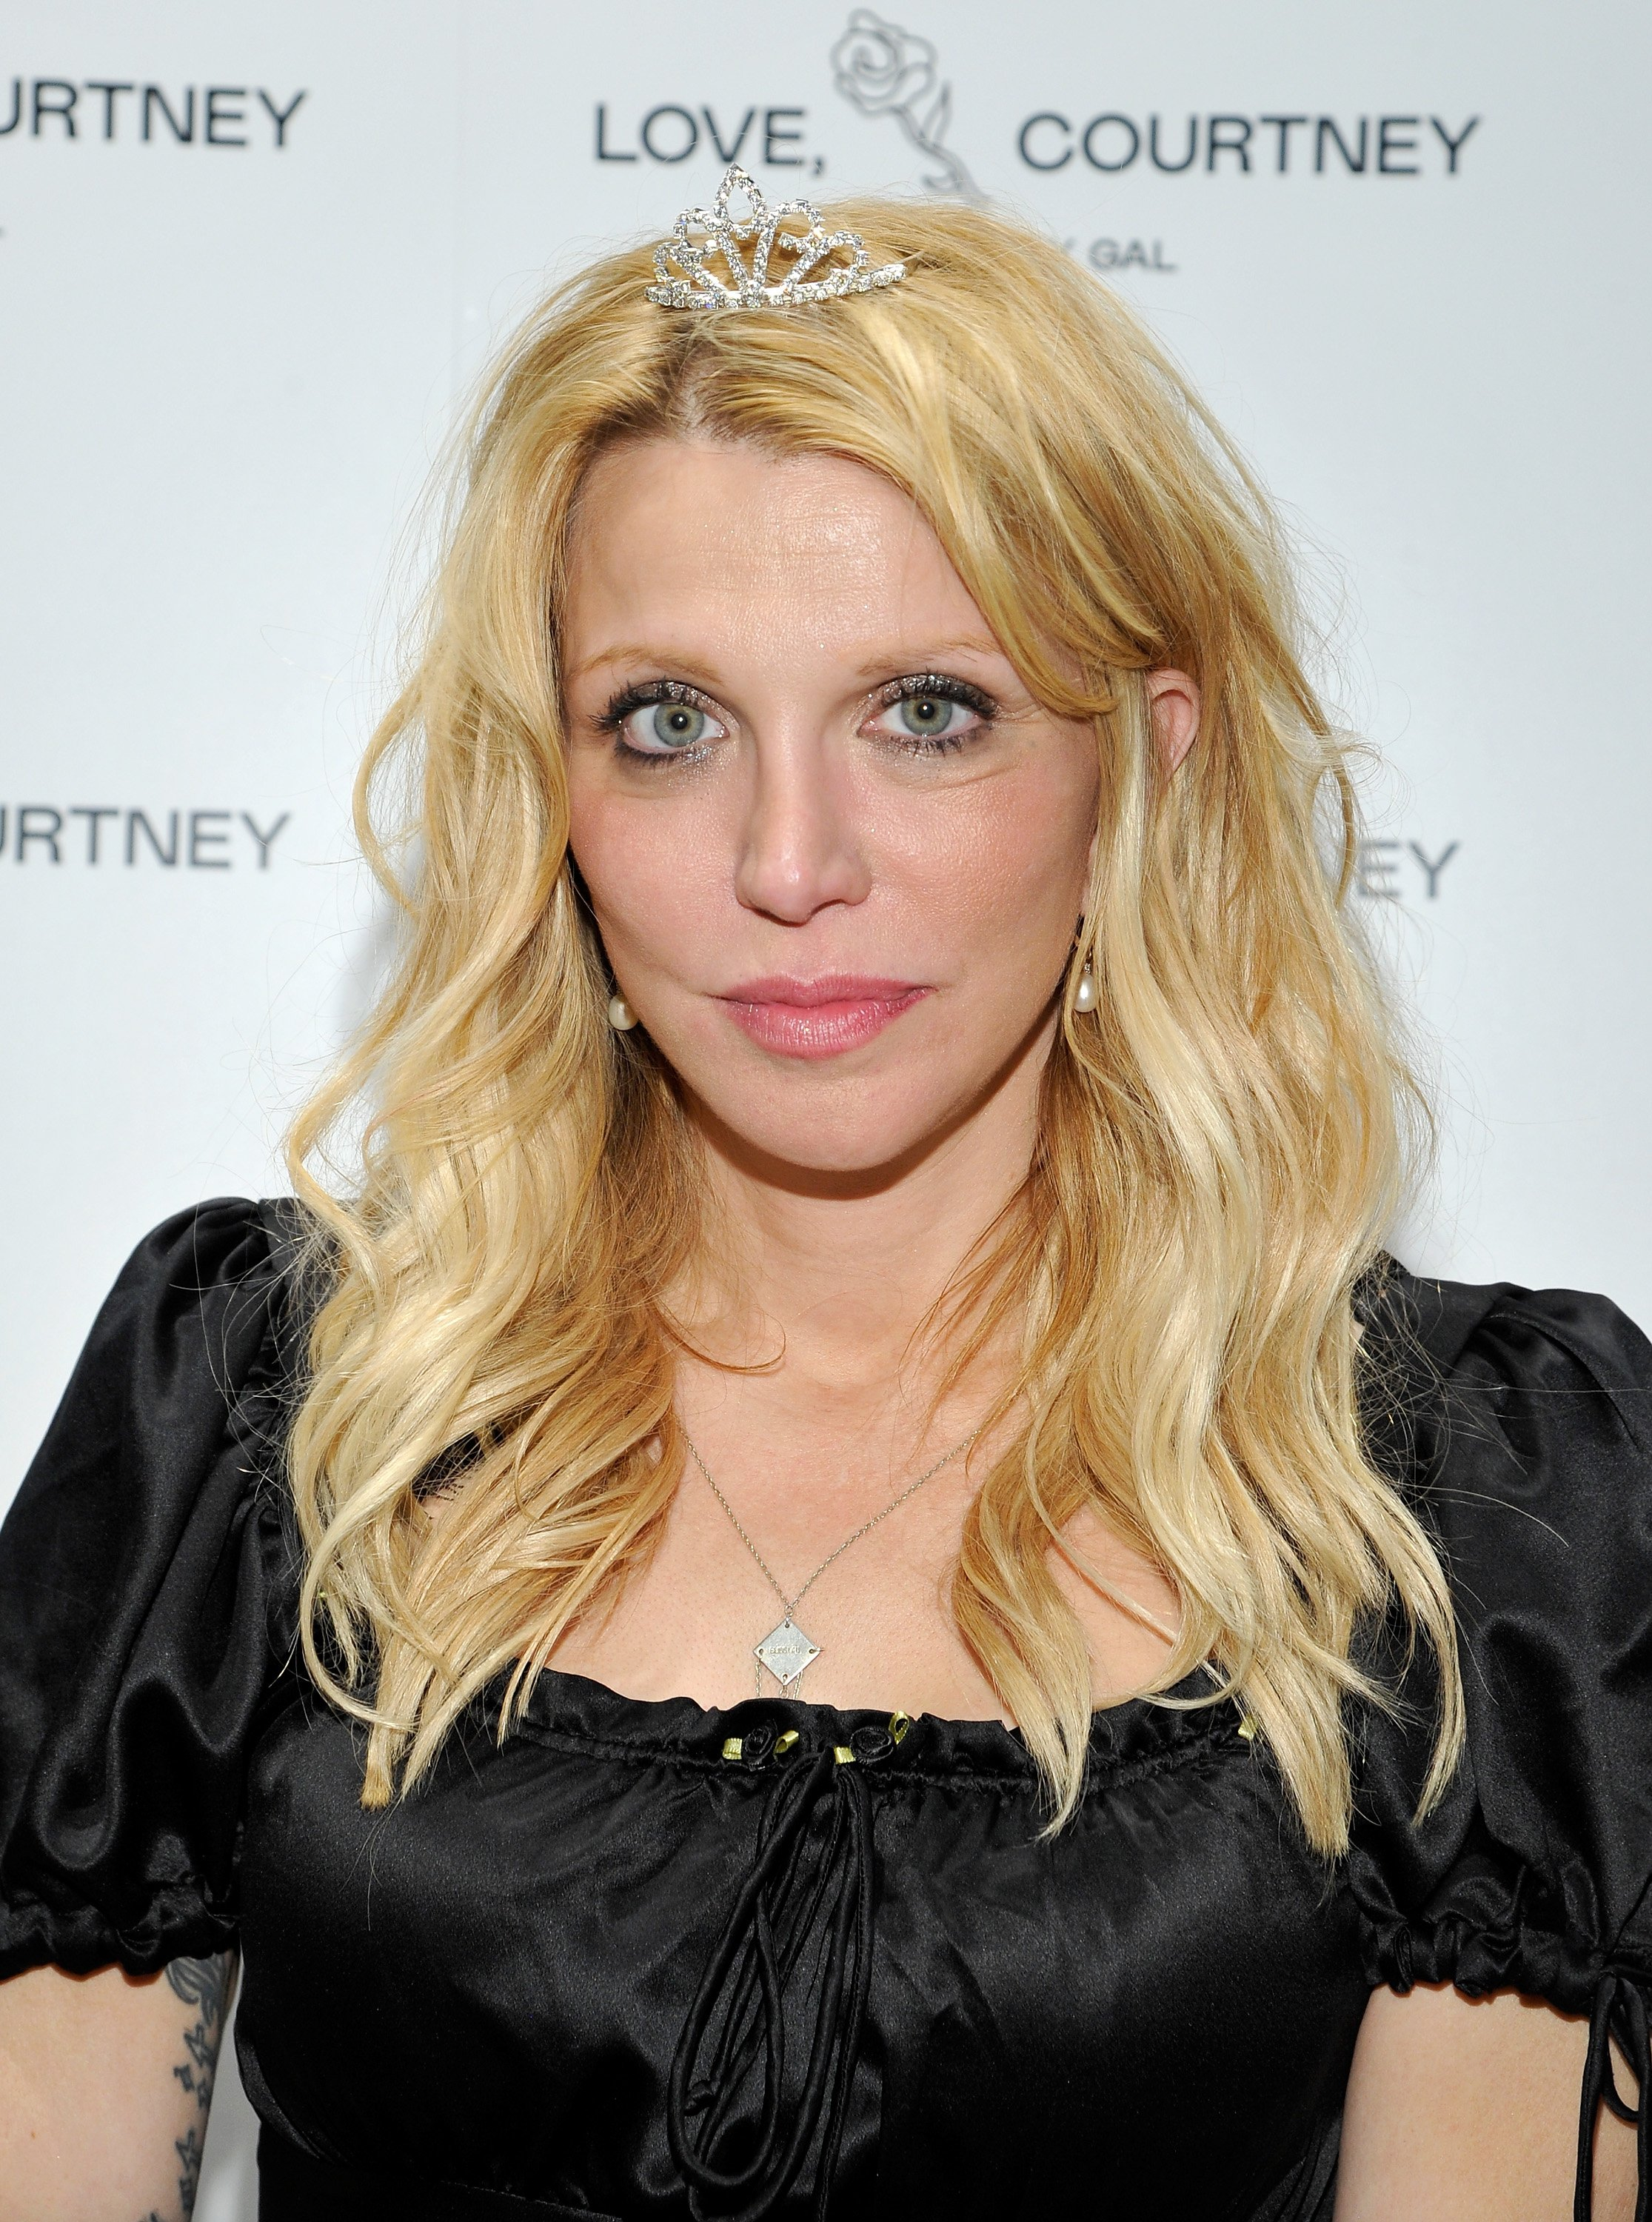 Courtney Love pictured at the Love, Courtney by Nasty Gal launch party, 2016, California. | Photo: Getty Images.